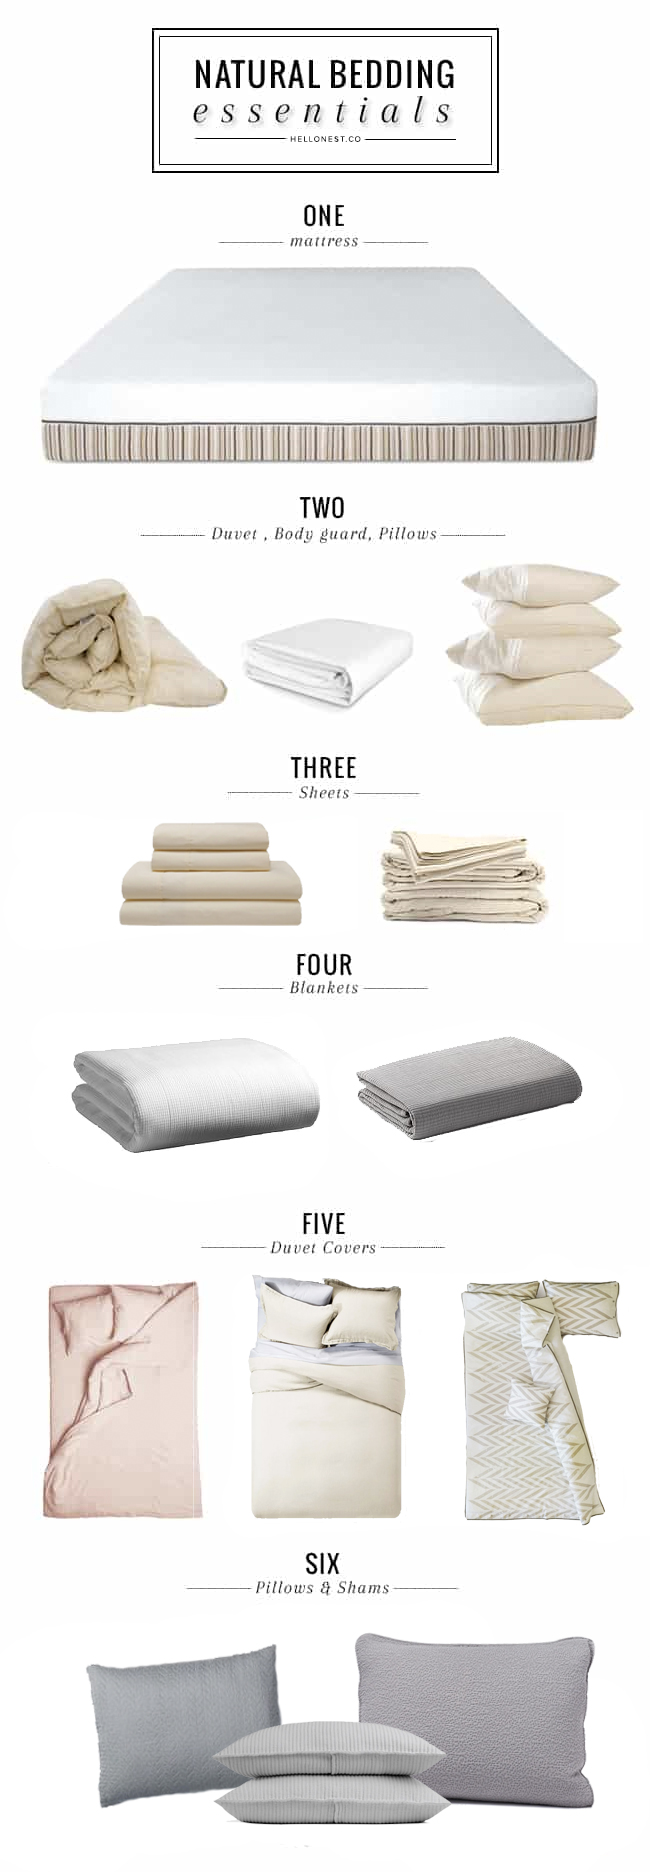 Natural Bedding Essentials - HelloNest.co